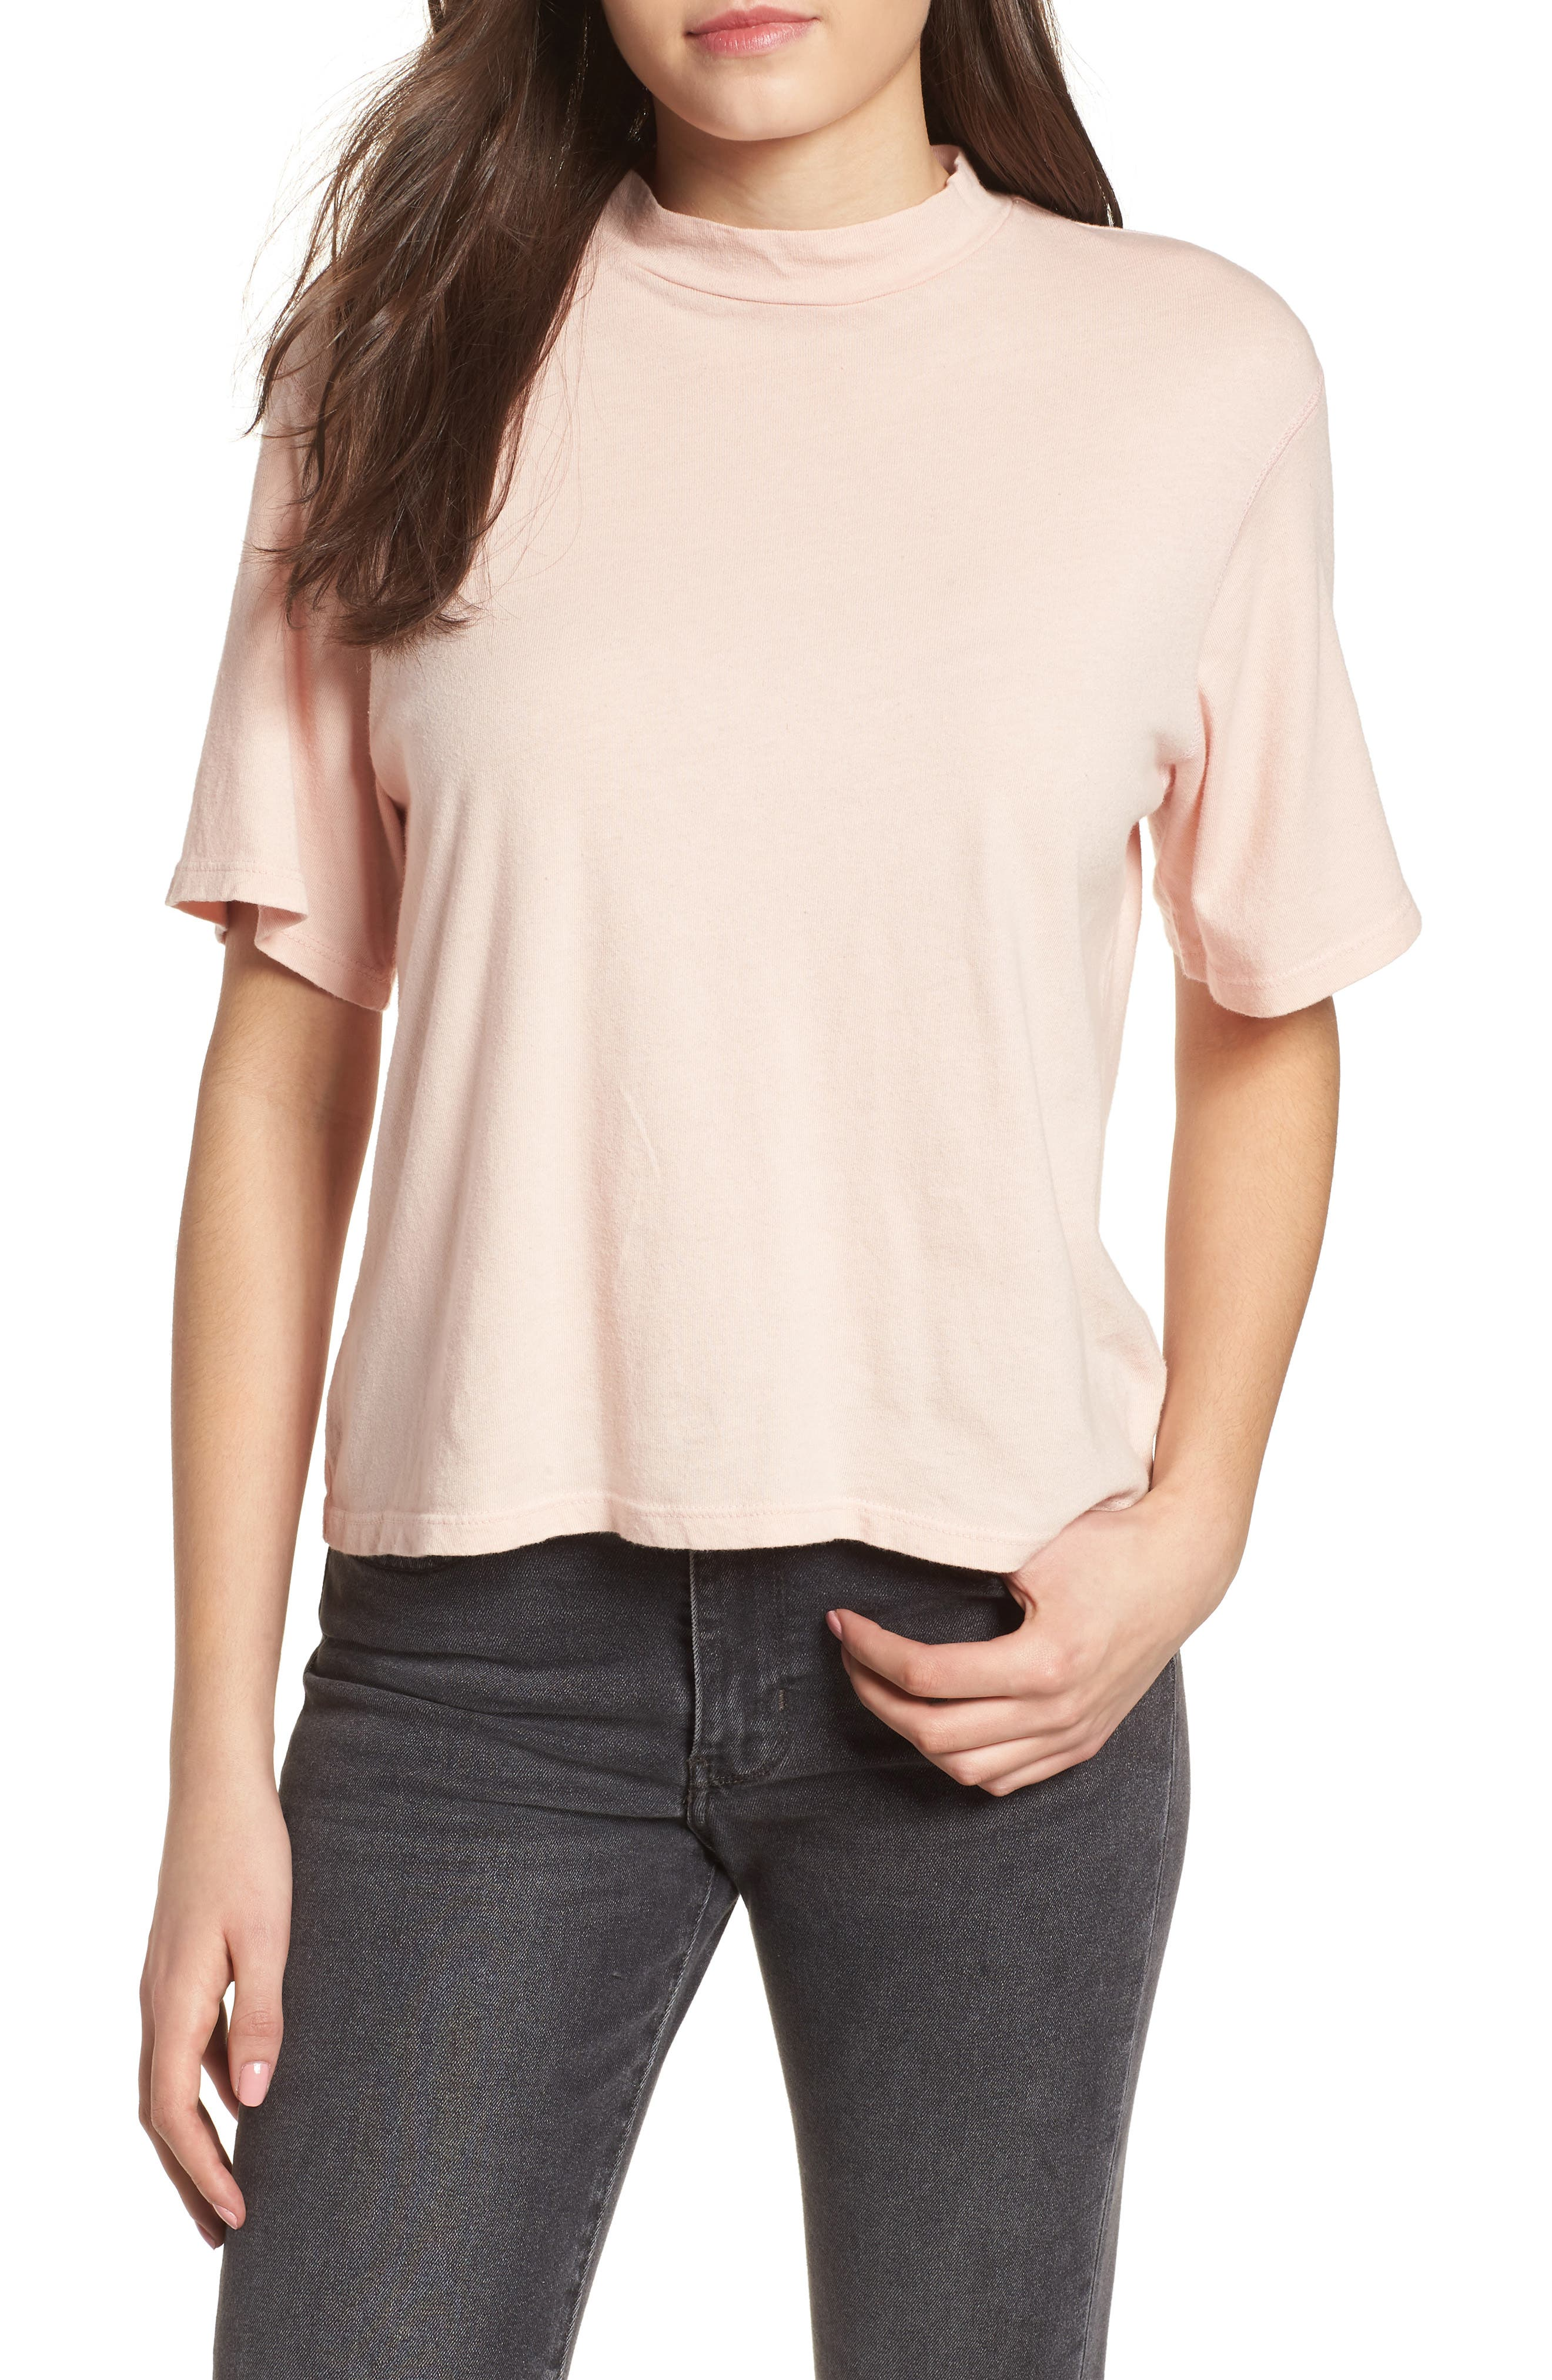 PST by Project Social T Mock Neck Tee